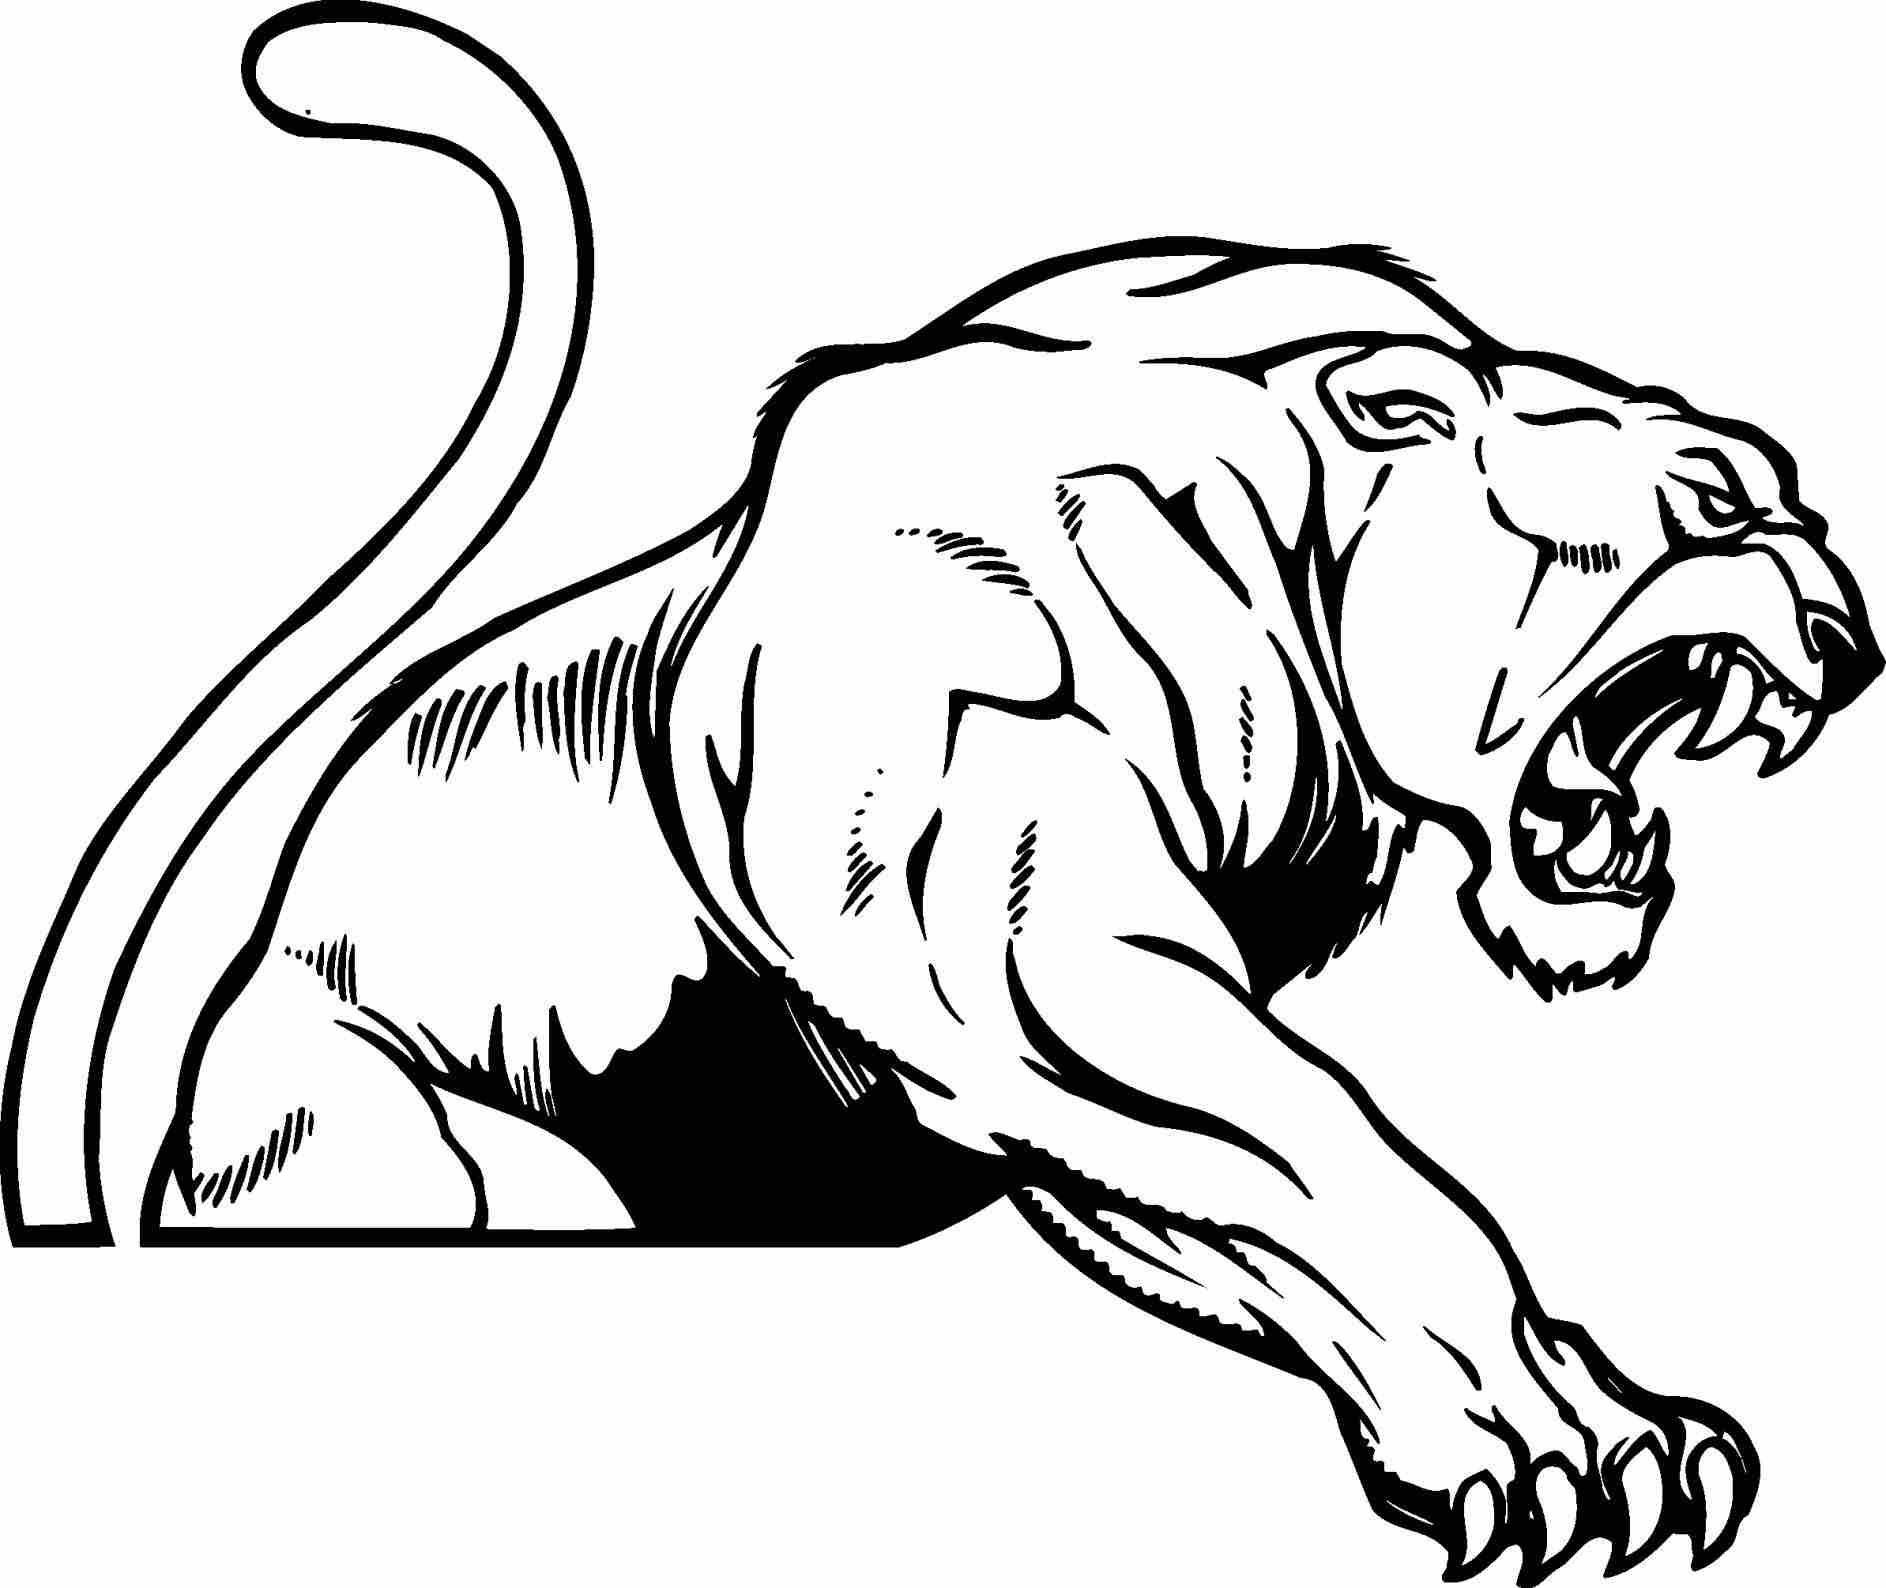 Free Of A Crouching Free Jaguar Clipart Black And White Of A Crouching Vector Sketch Walks Stock Vector Jaguar C Paw Print Clip Art Clipart Black And White Art